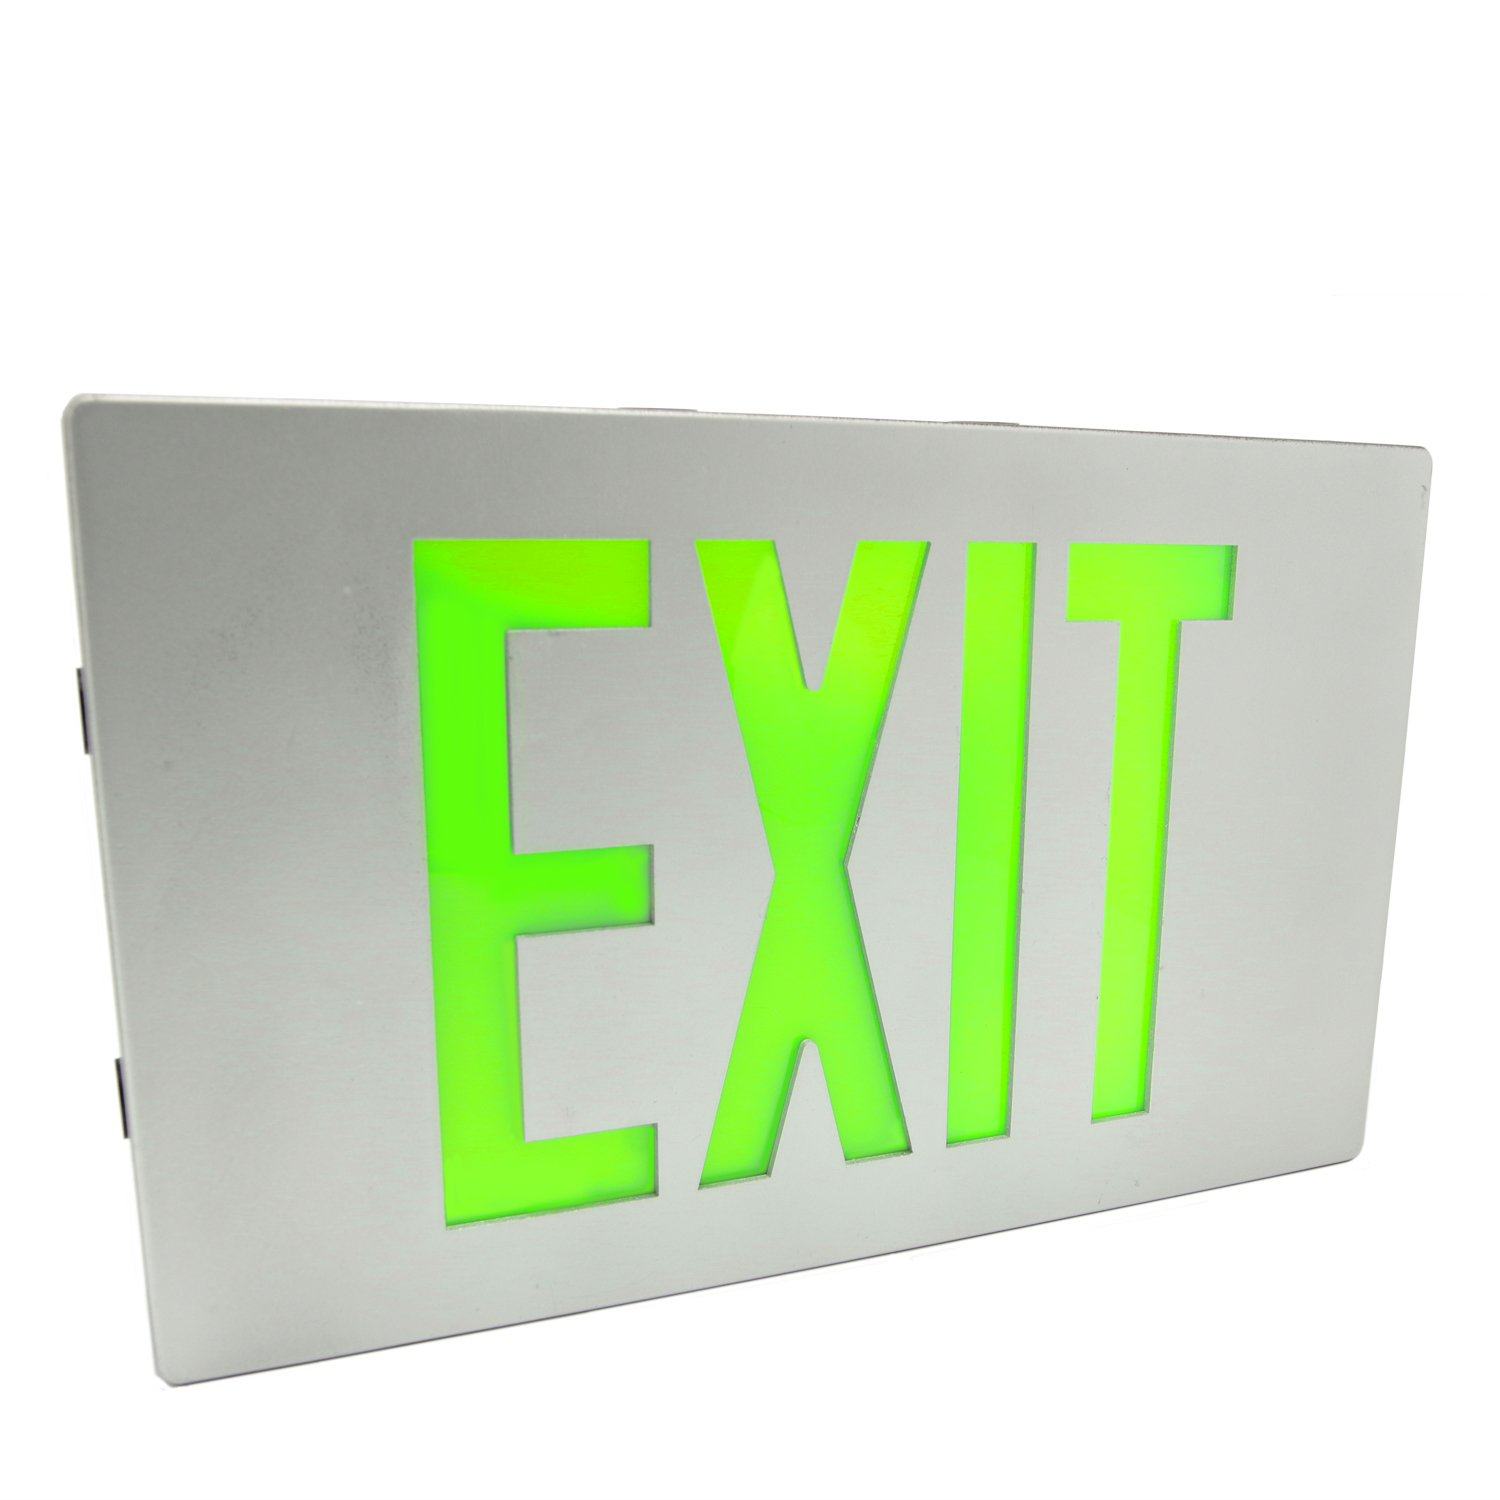 eTopLighting Die Cast Exit Sign LED Light Panel, Aluminum Brushed with Green Lettering, Wall and Ceiling Mount with Battery Back-Up, K-TEM-FD3DGG